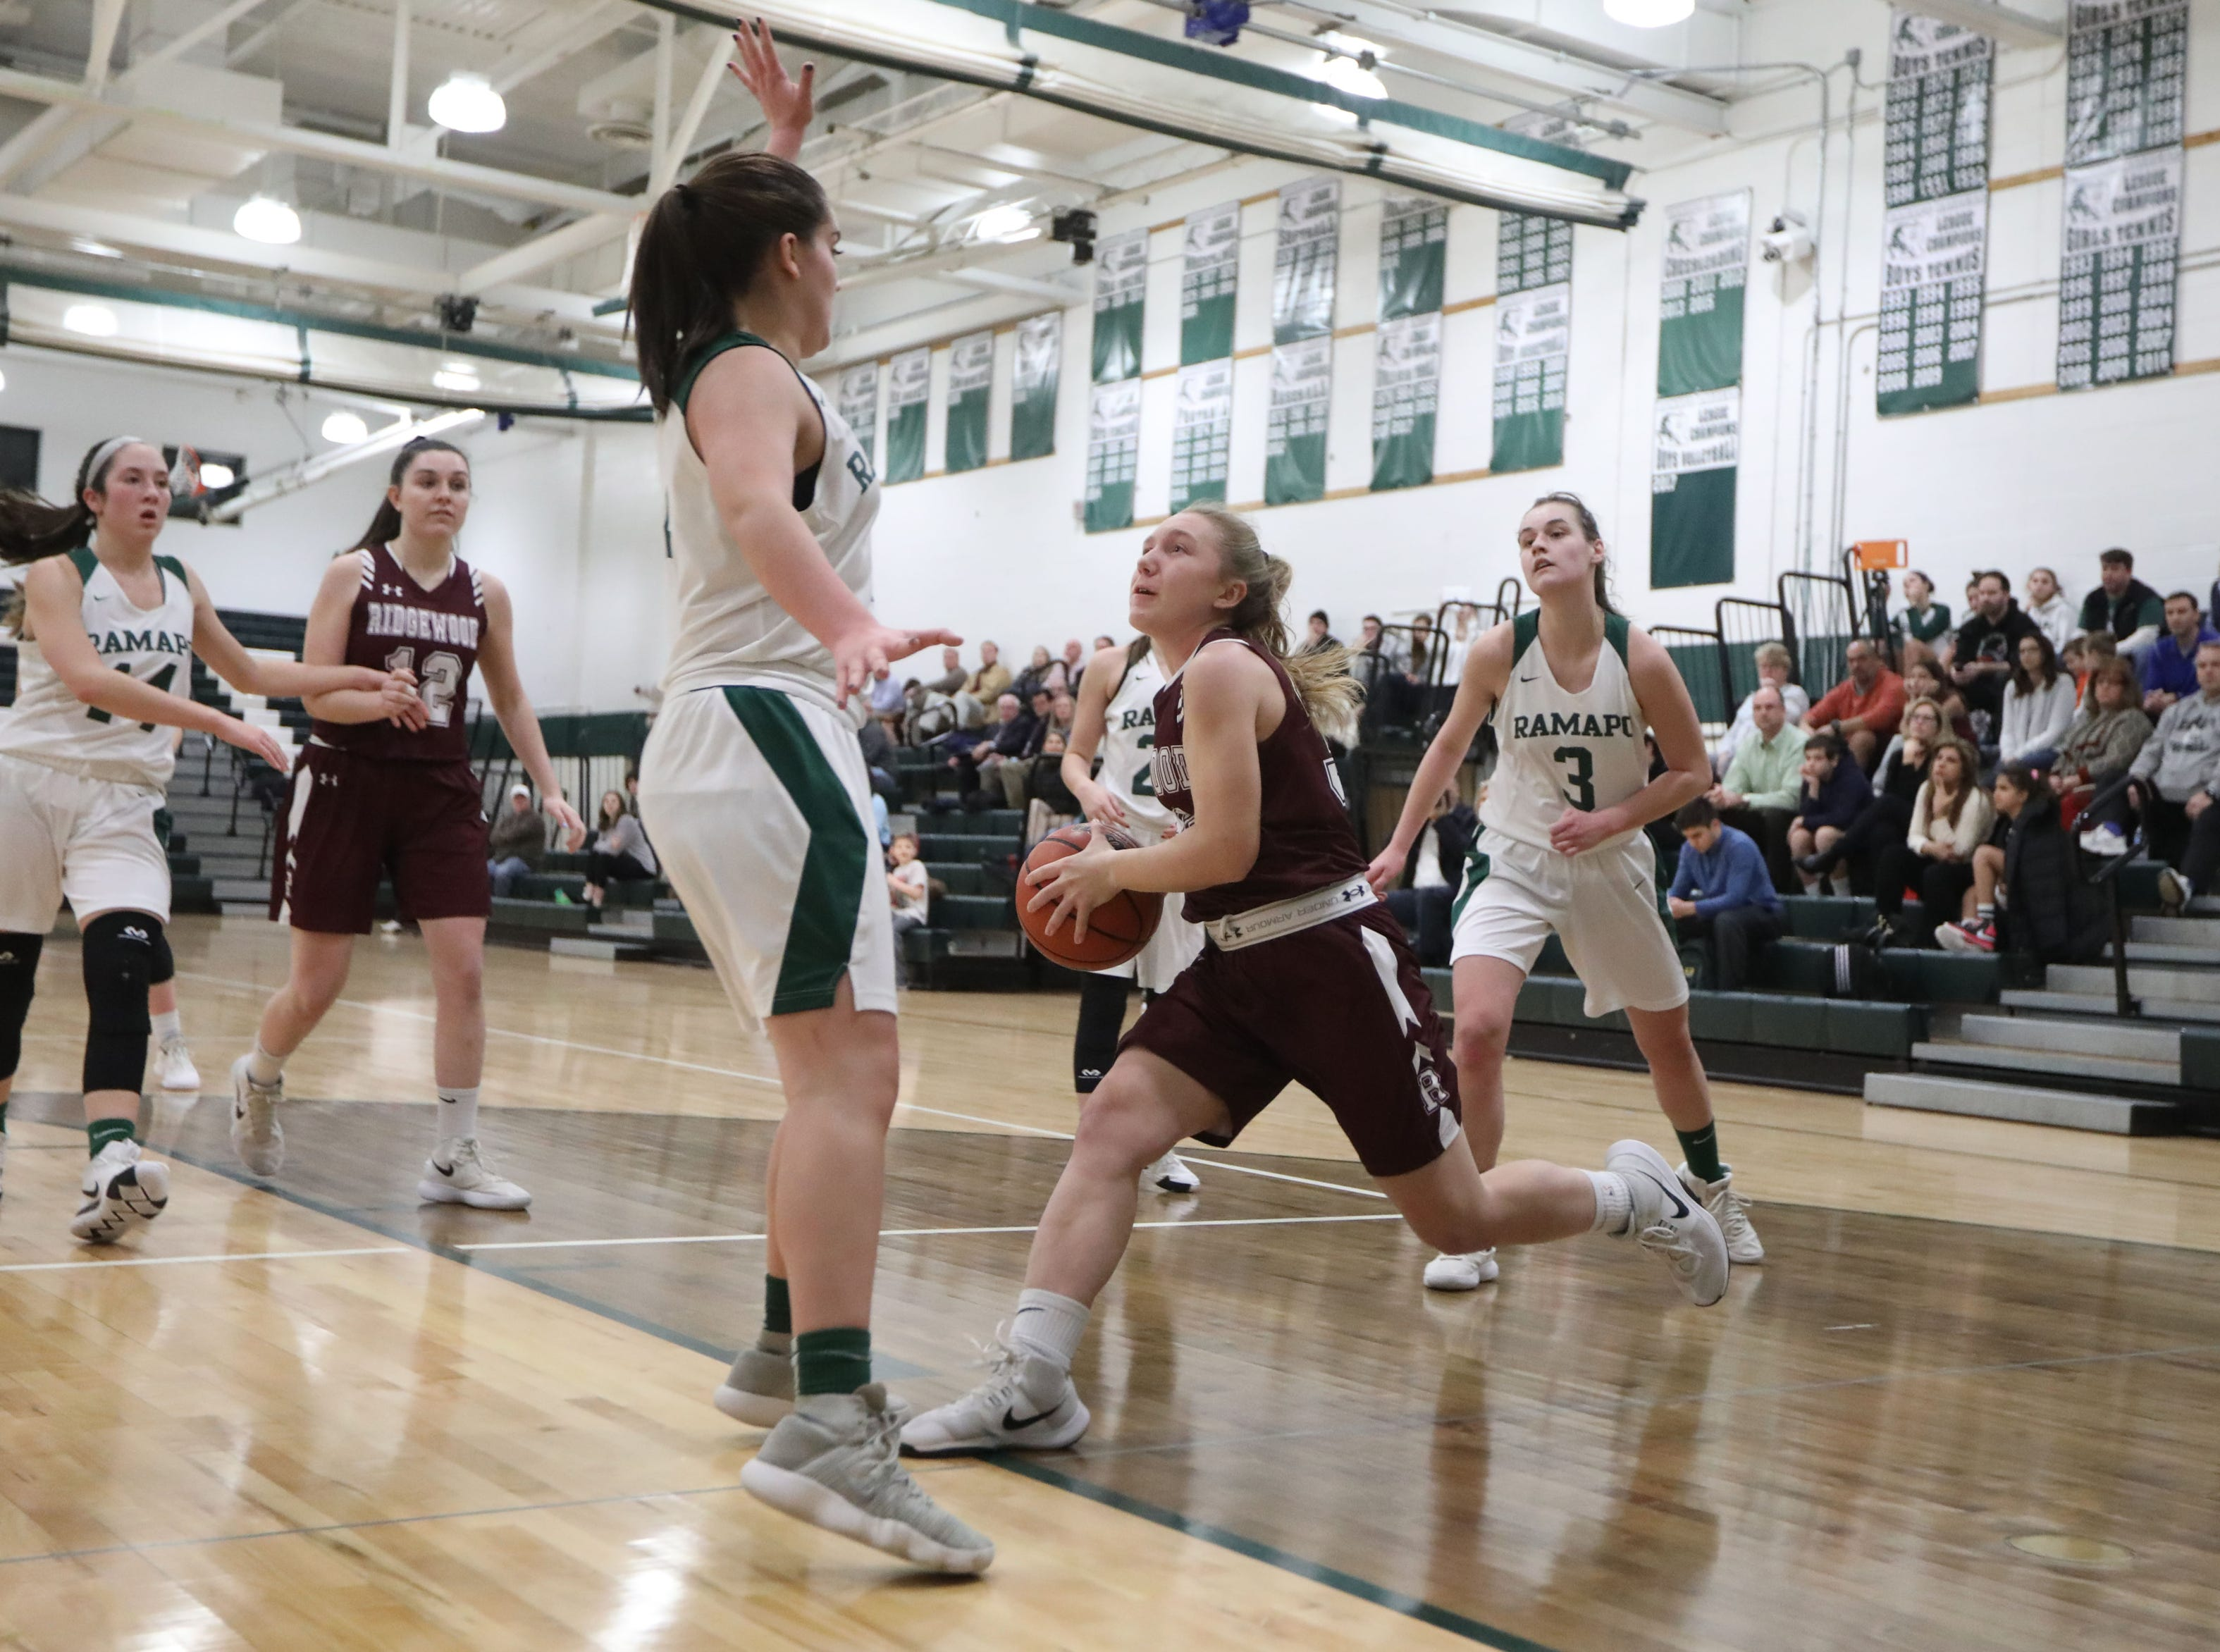 Allie Olsen, of Ridgewood, eyes the basket against Ramapo. Thursday, January 10,  2019